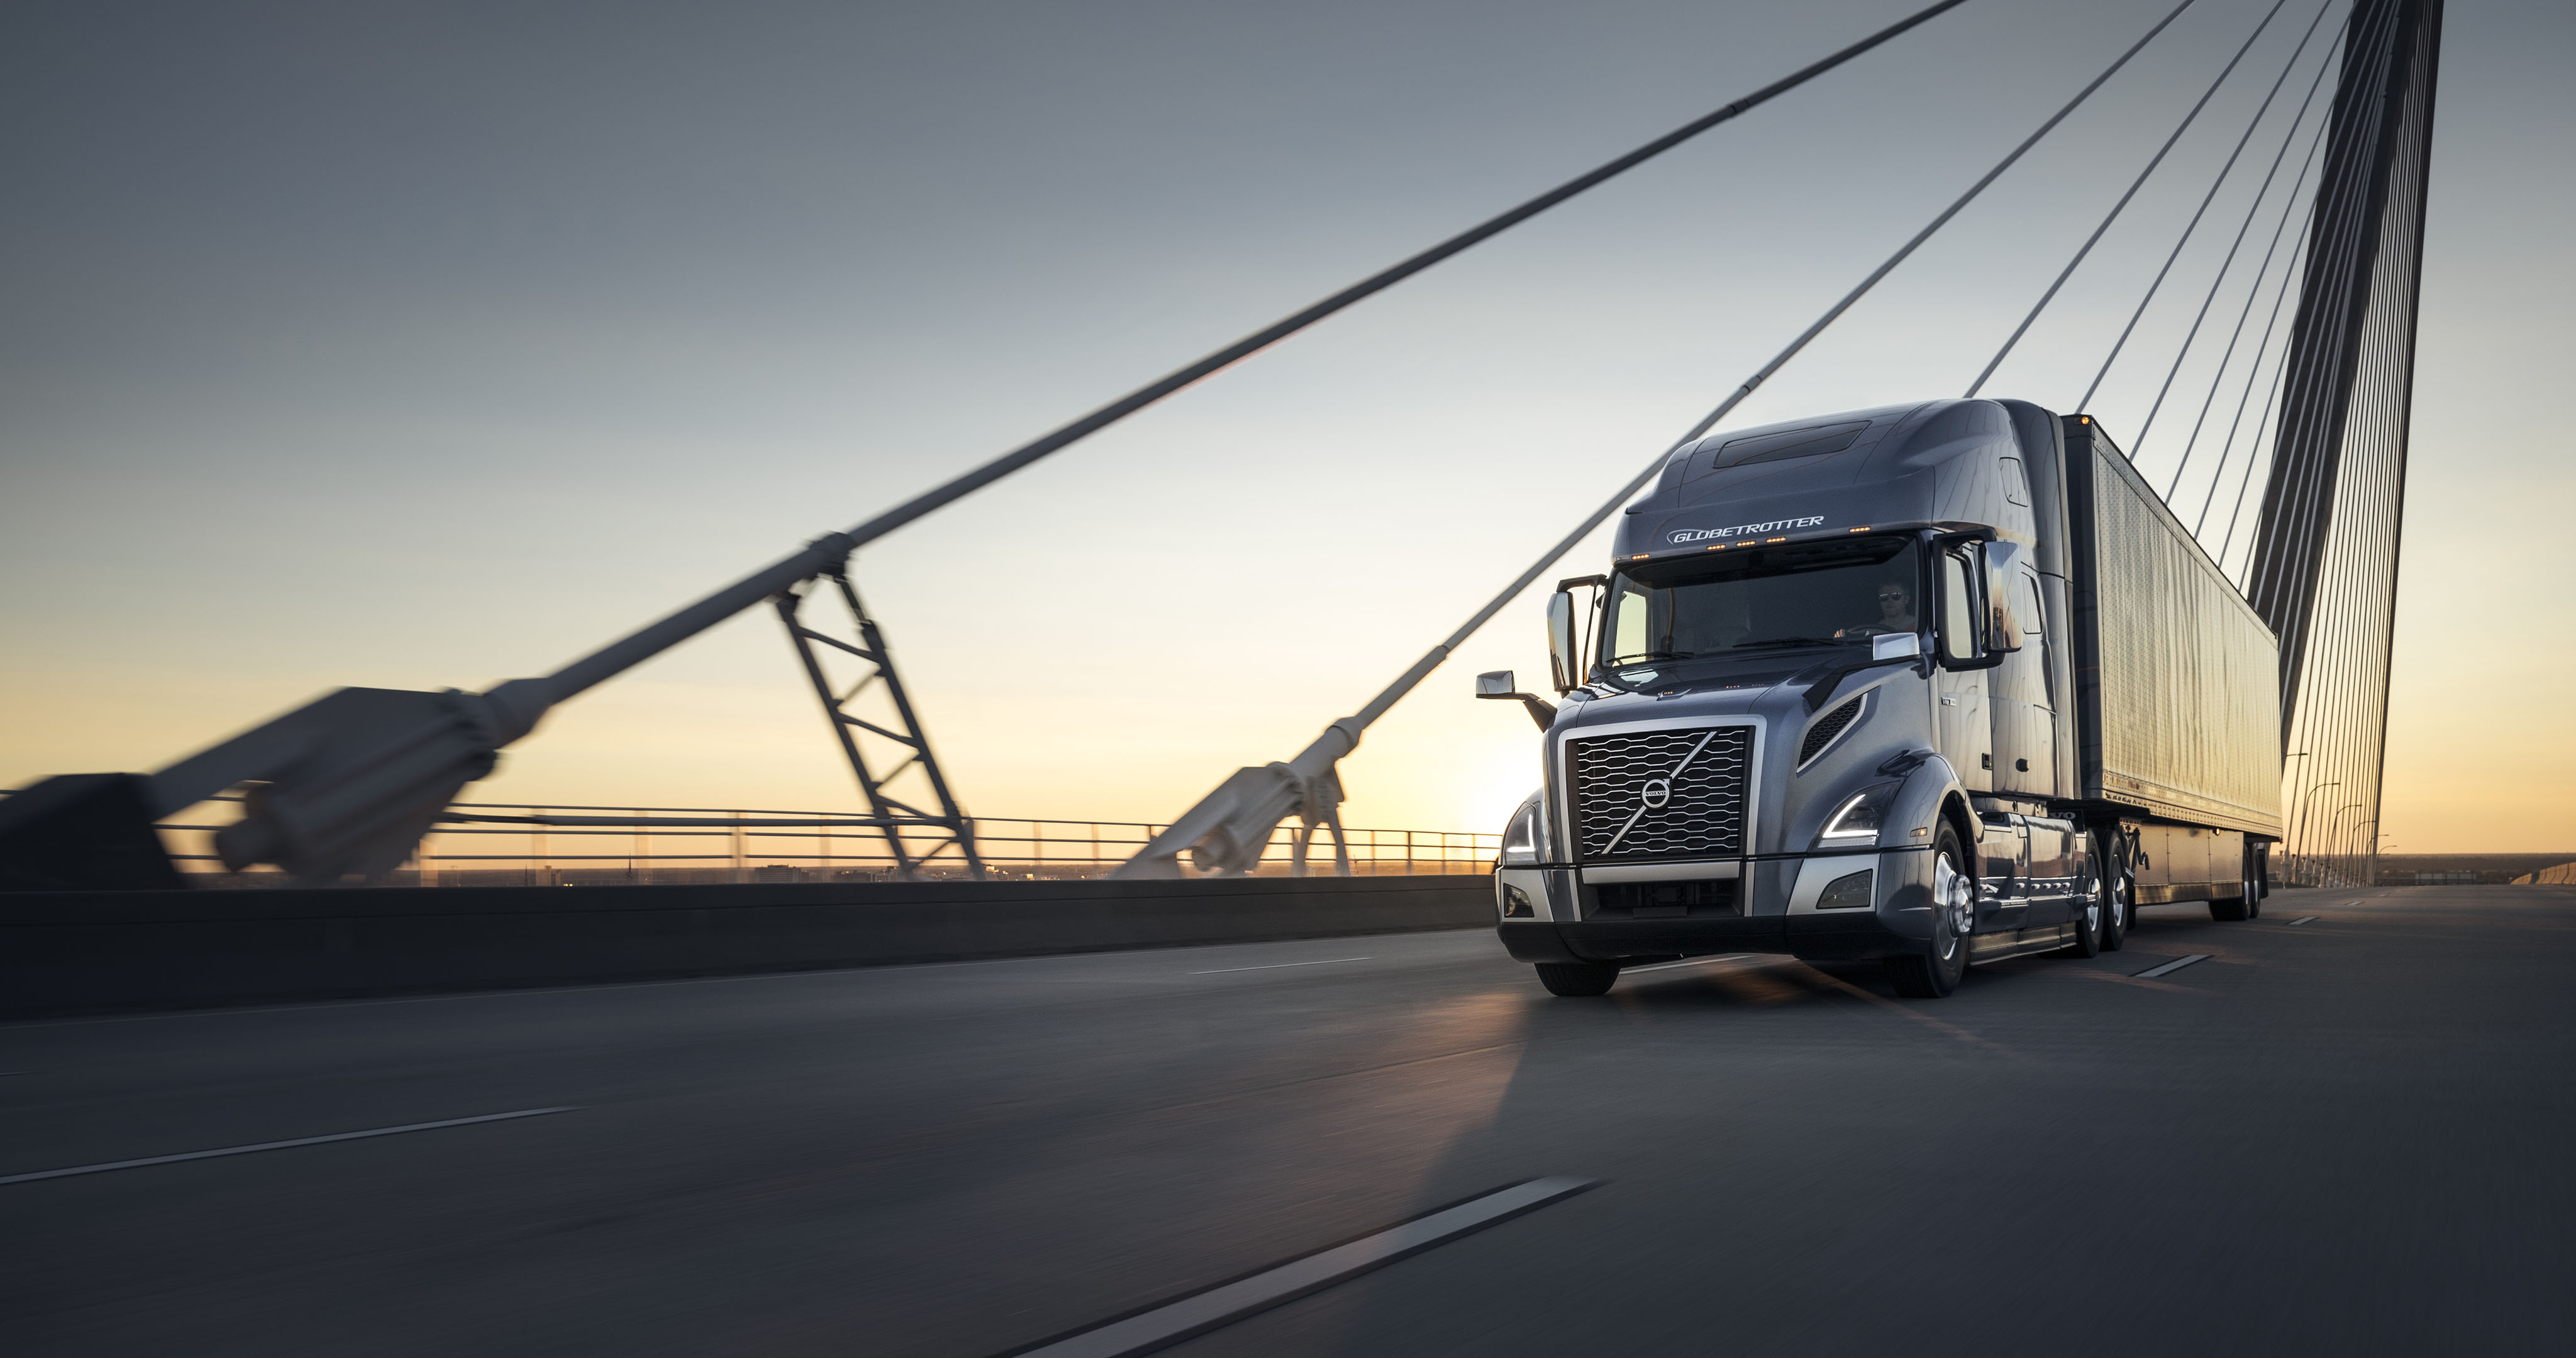 Vnl exterior volvo trucks usa the new standard for long haul productivity the volvo vnl publicscrutiny Images